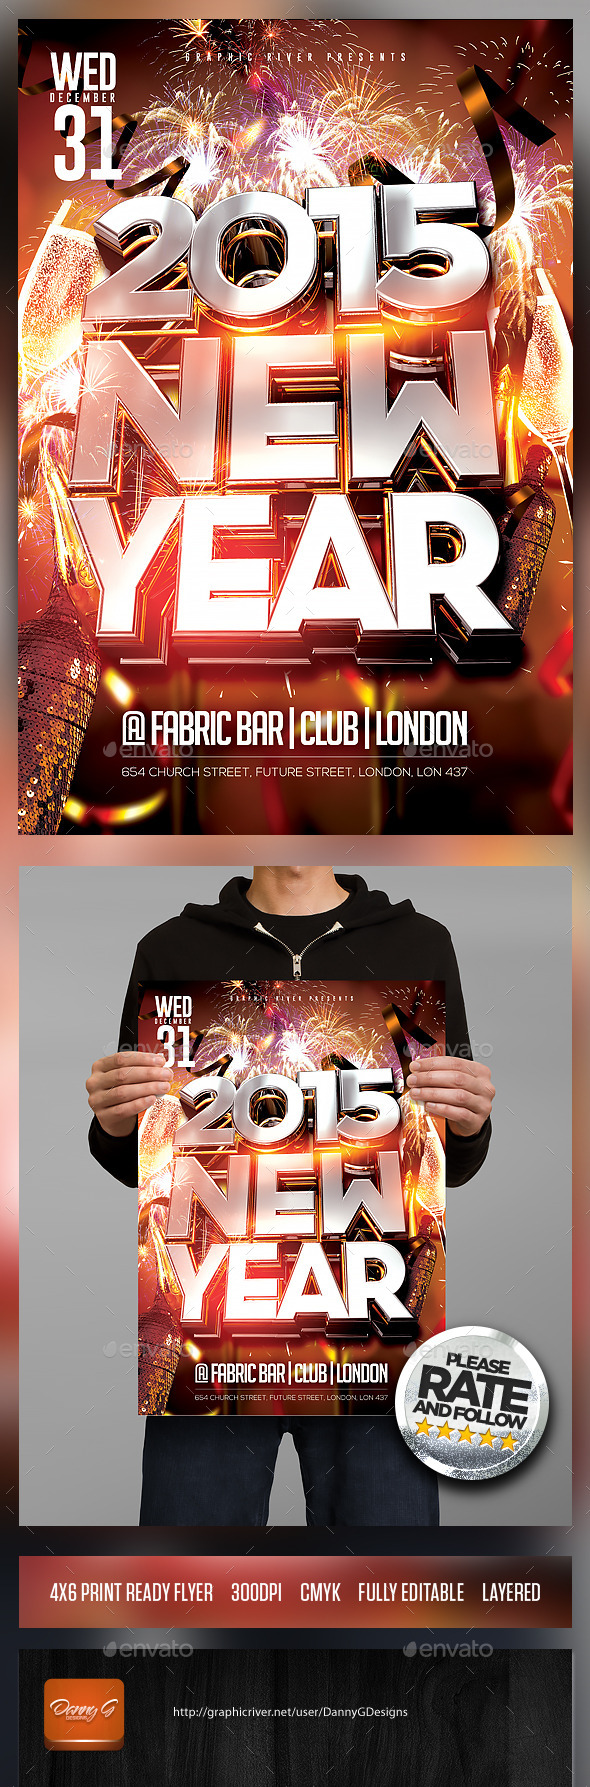 2015 New Year Flyer Template PSD